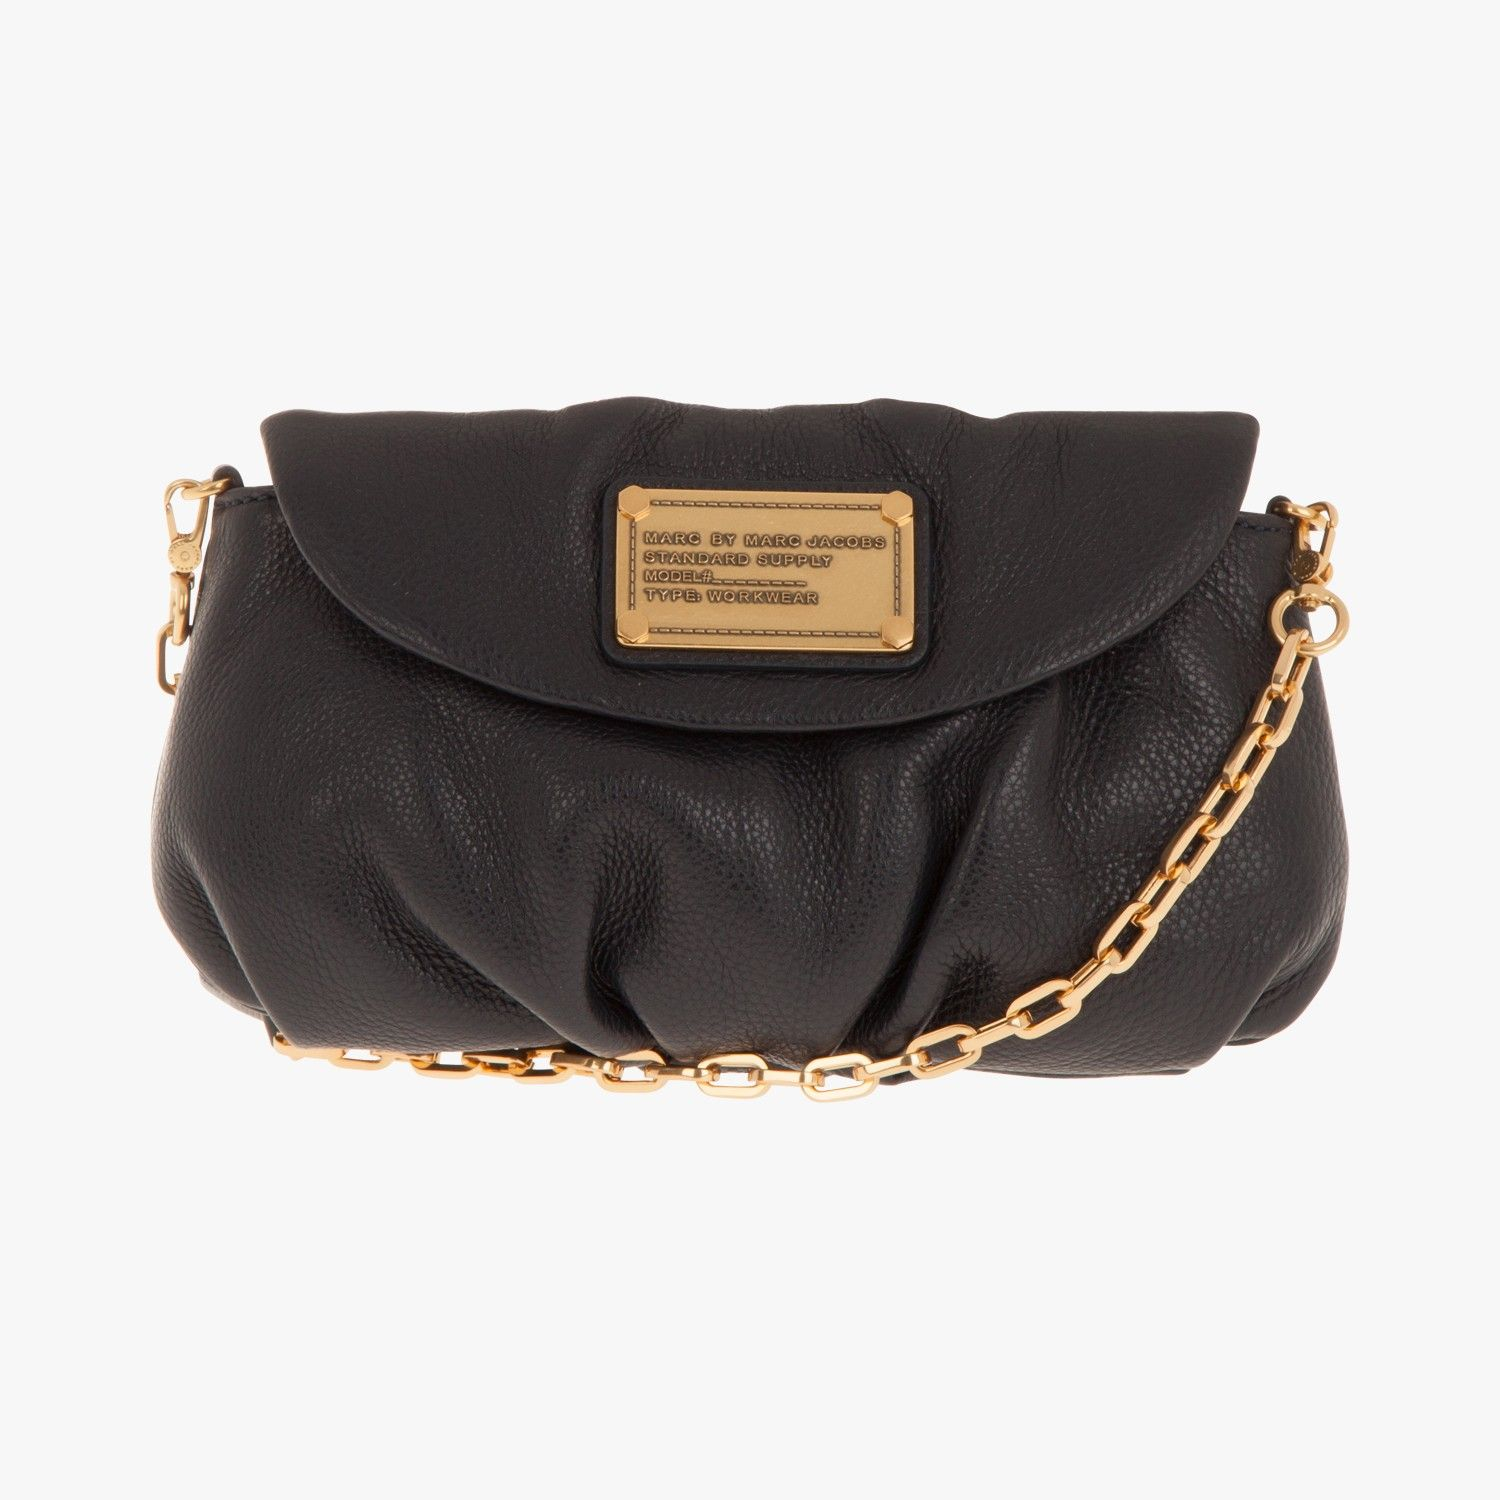 Sac à main anse maillons MARC BY MARC JACOBS Find this product on Bon  Marché website 77a7dfa97af